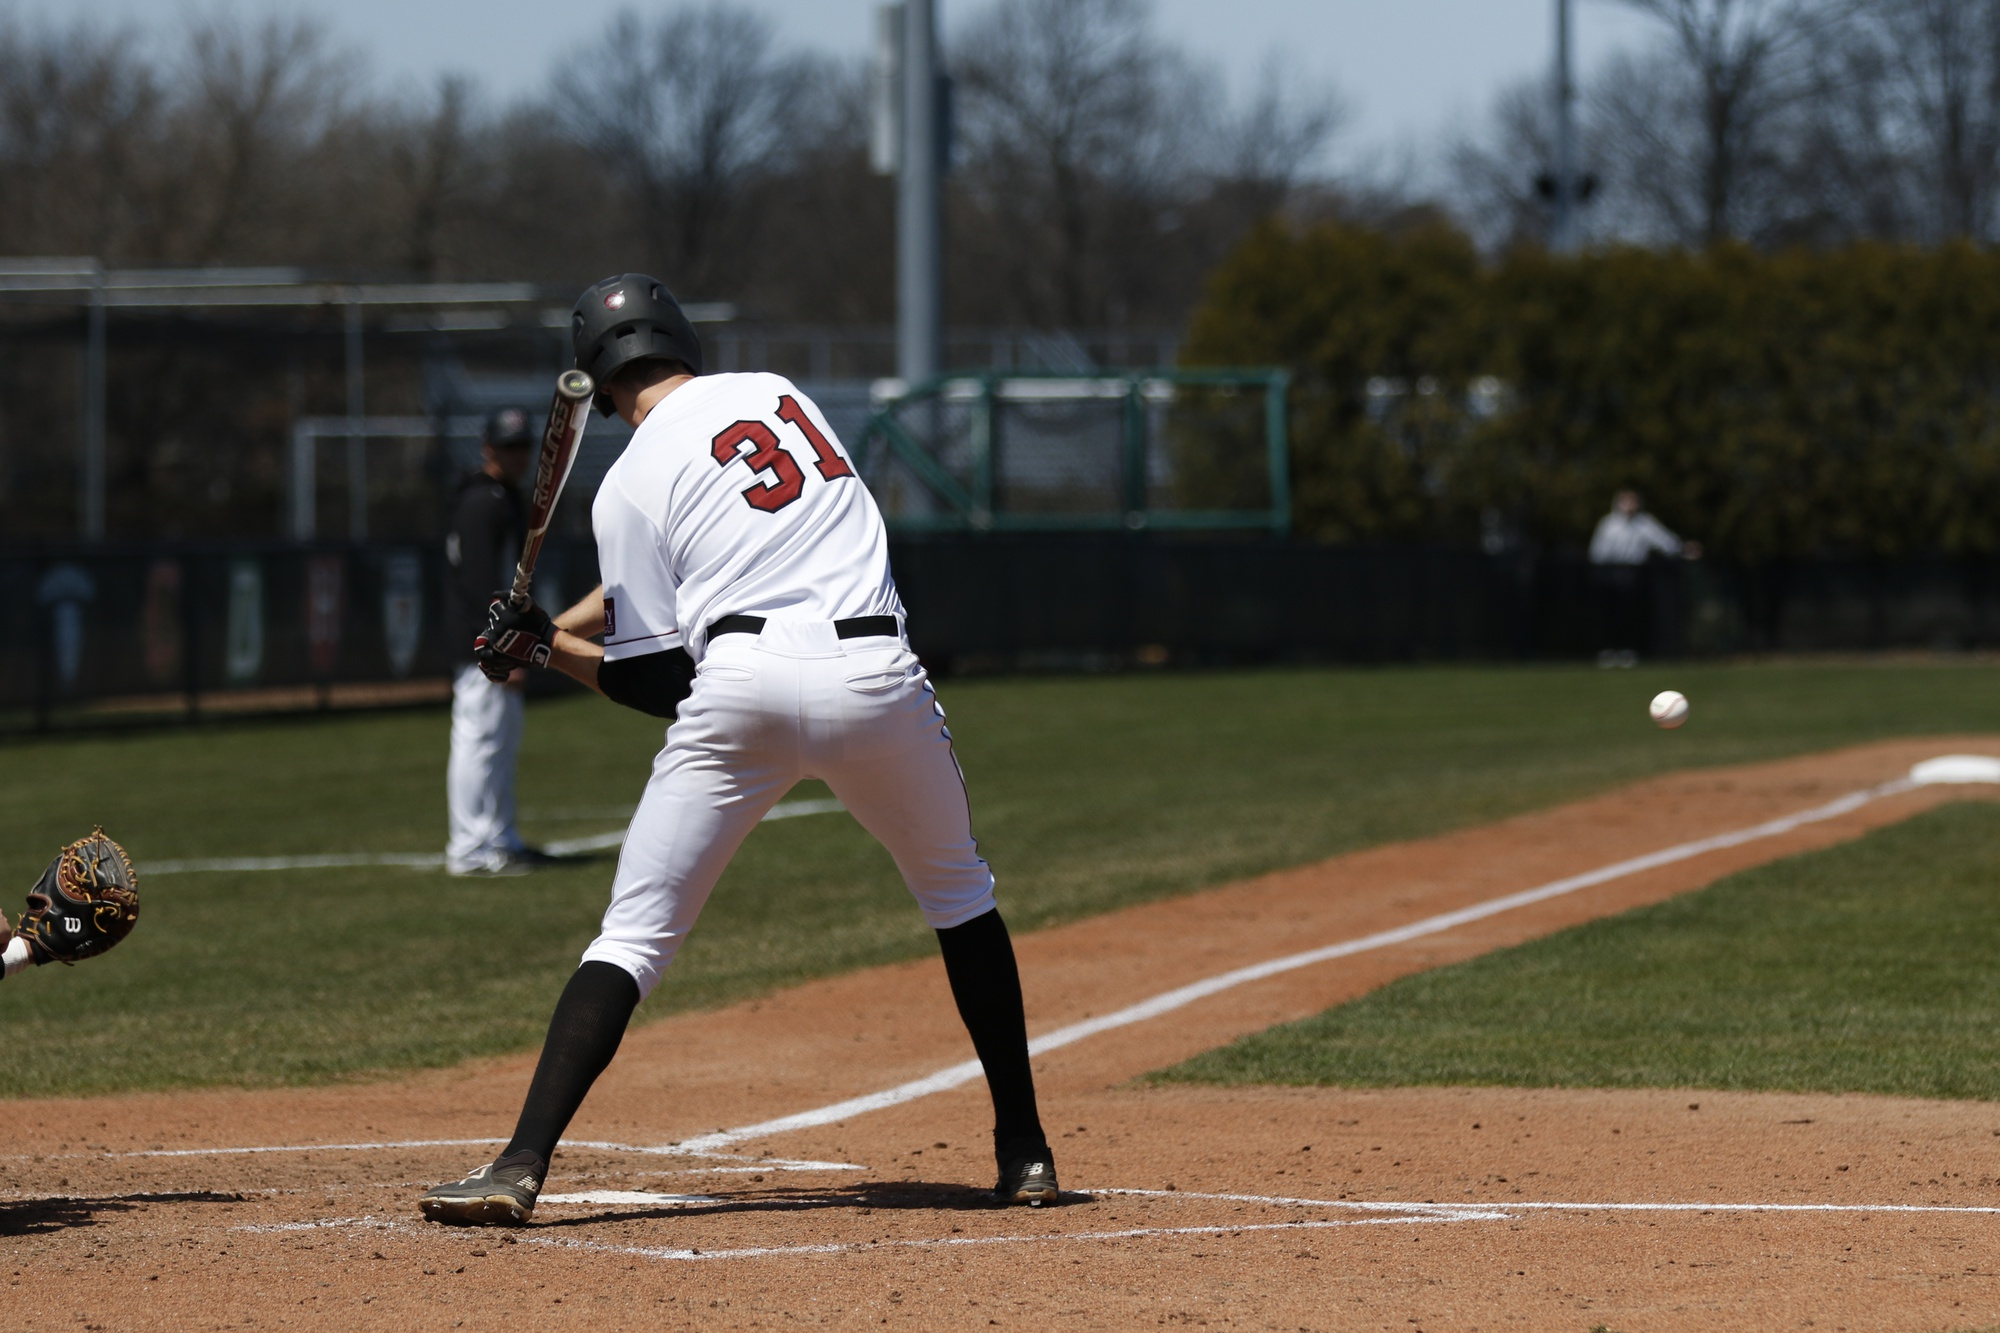 Senior 1B Pat McColl tees off on a pitch in action from last season.